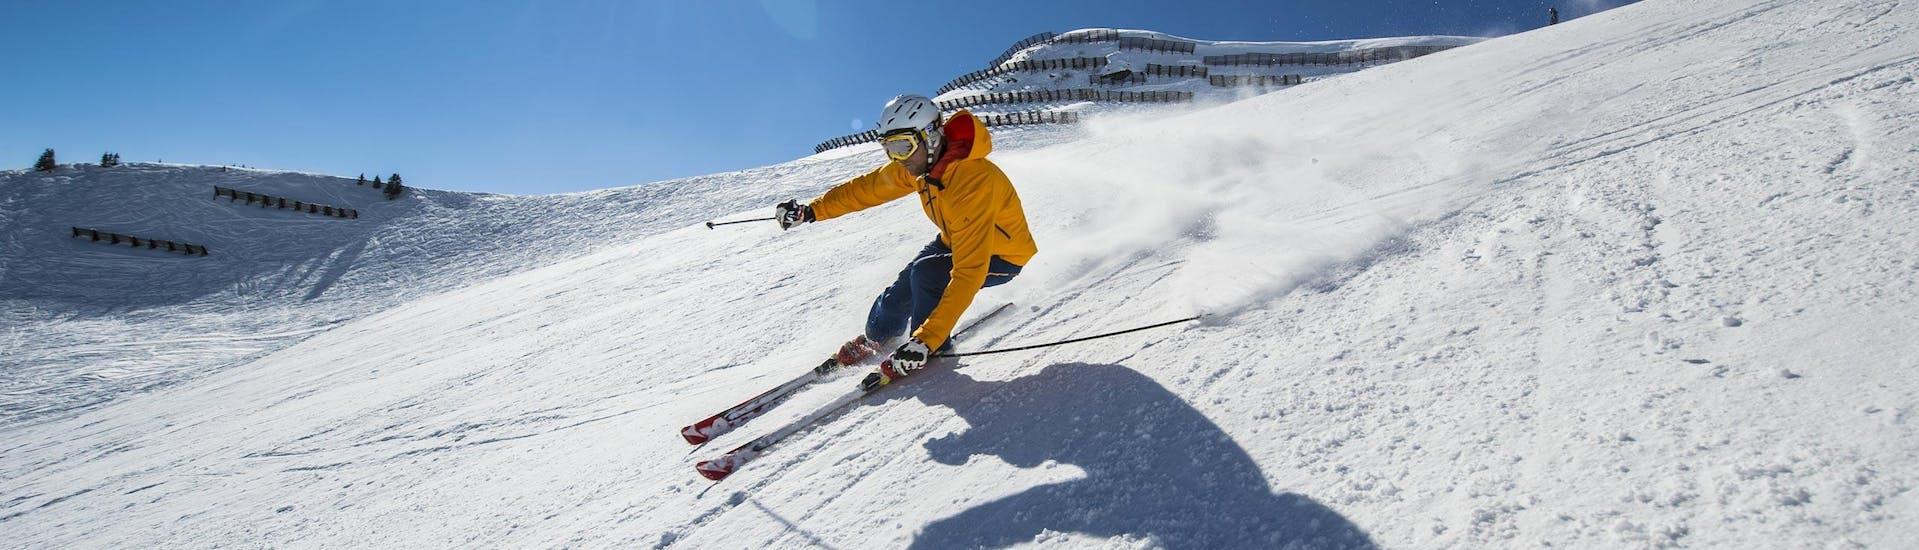 Ski Instructor Private for Adults - All Levels: A skier is skiing down a sunny ski slope while participating in an activity offered by Erste Skischule Bolsterlang.